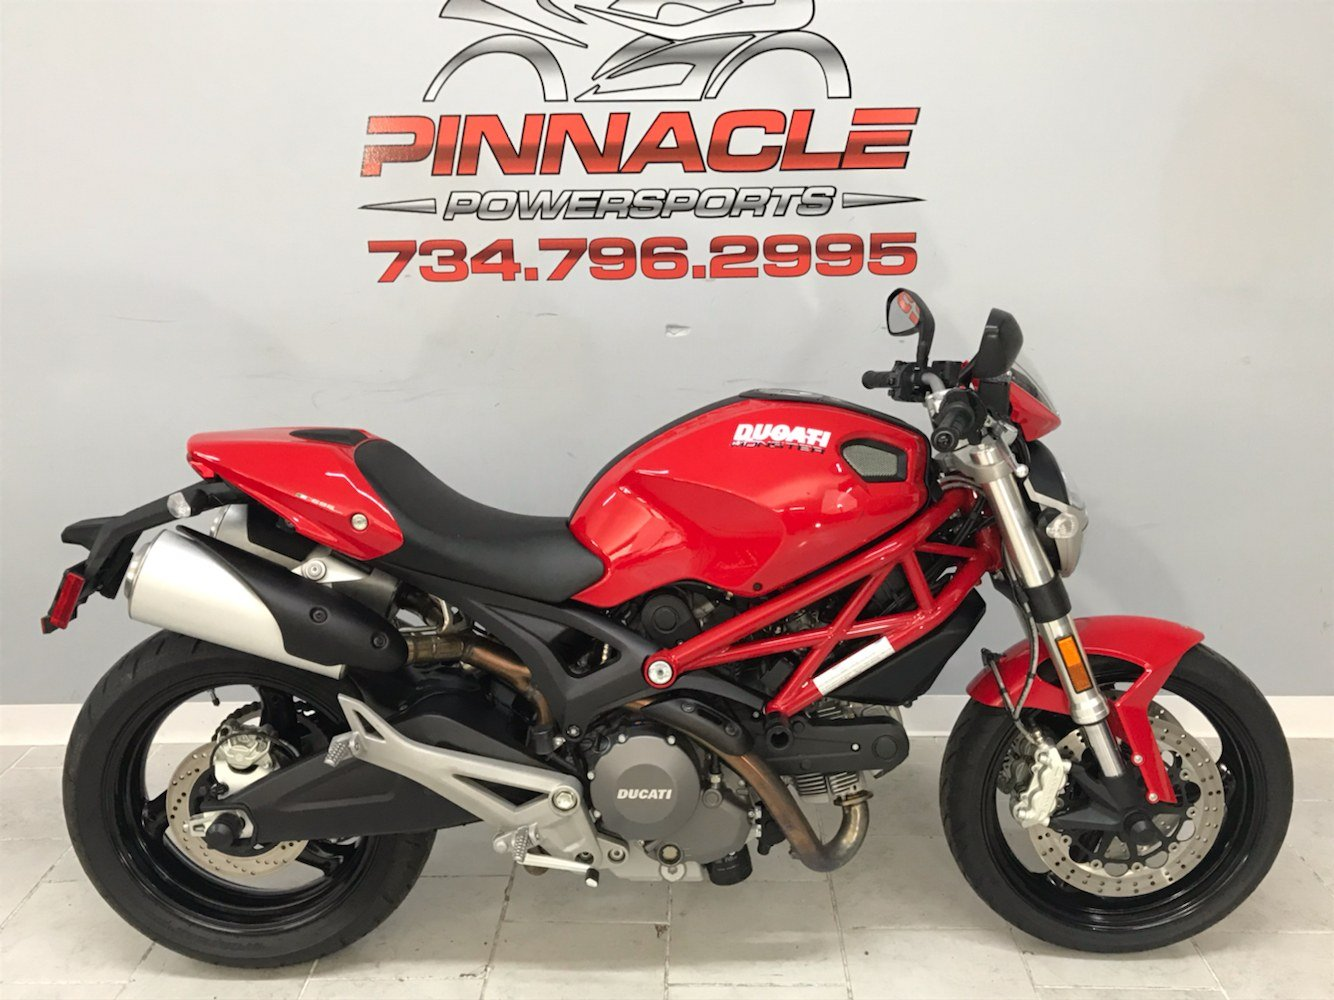 2012 Ducati Monster 696 in Belleville, Michigan - Photo 1